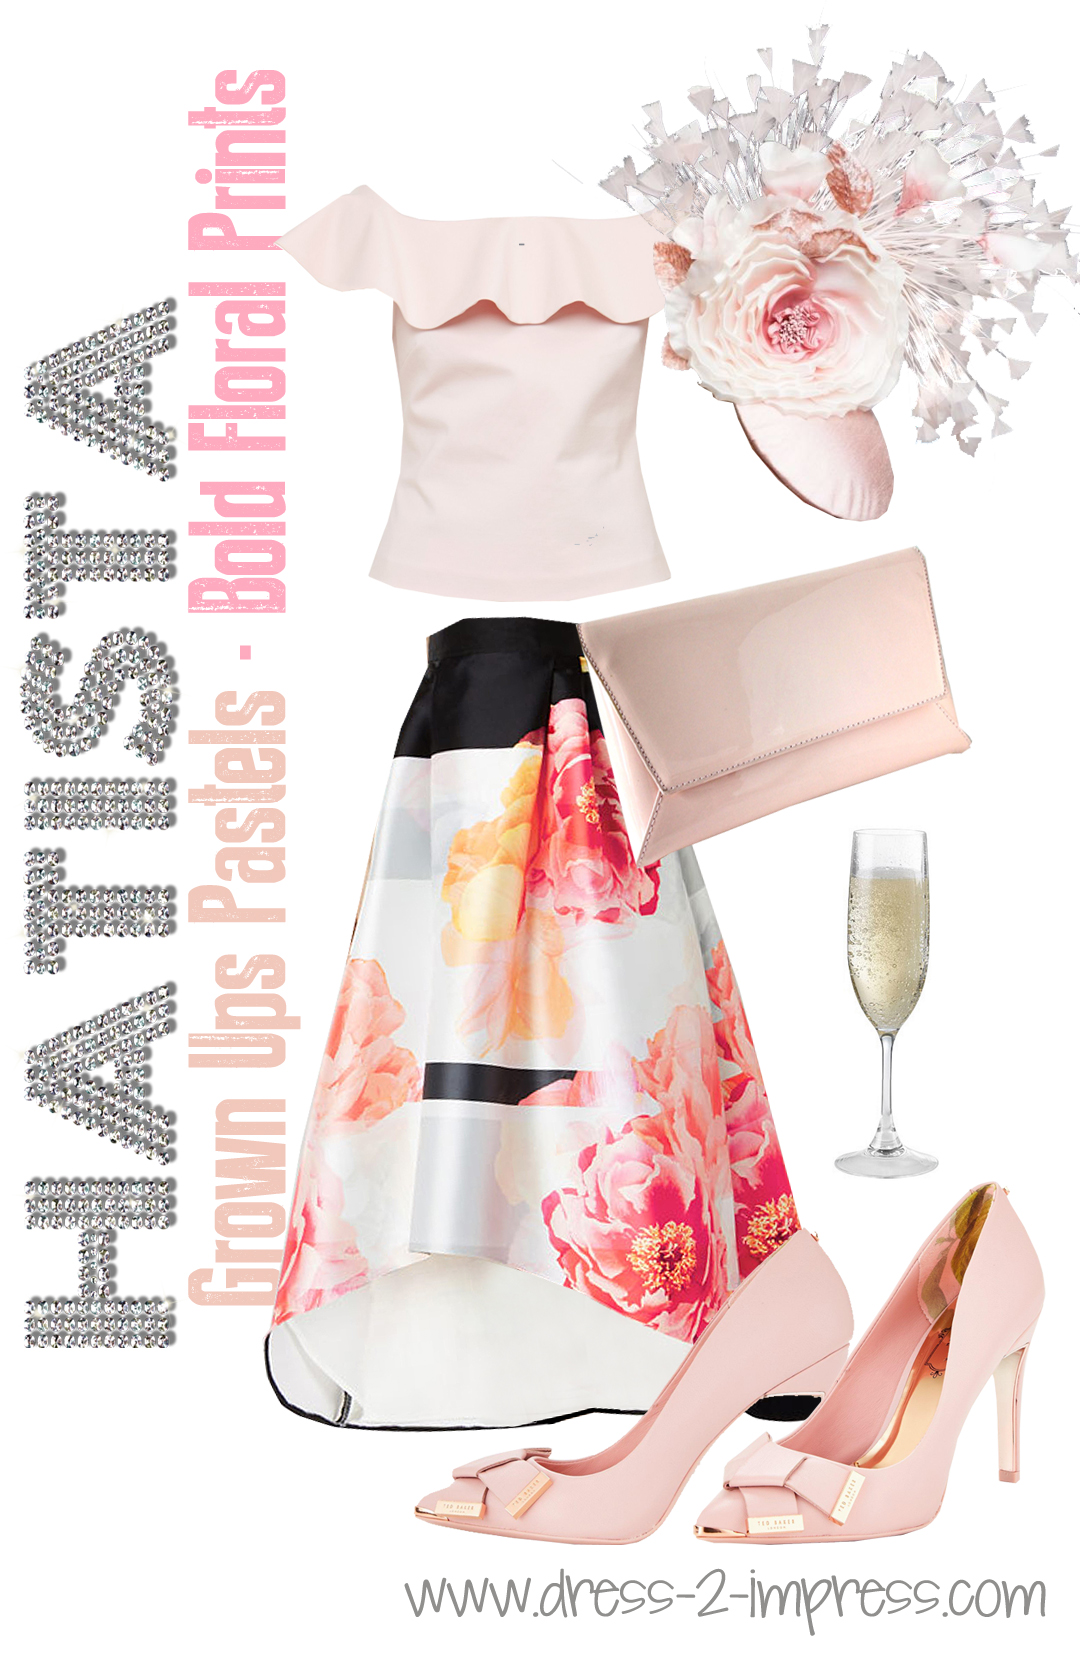 Pink isn't Just for Girls under 8 or Barbie - Need Tips and lot's of outfit inspiration ideas on Wearing Pink for the races or summer weddings? Read blog from THE HATISTA www.dress-2-impress.com #wearpink #fashionista #ontheblog #summerweddings #outfits #pinkoutfits #kentuckyderby #royalascot Outfit Ideas for Kerntucky Derby or Royal Ascot, Day at the Races